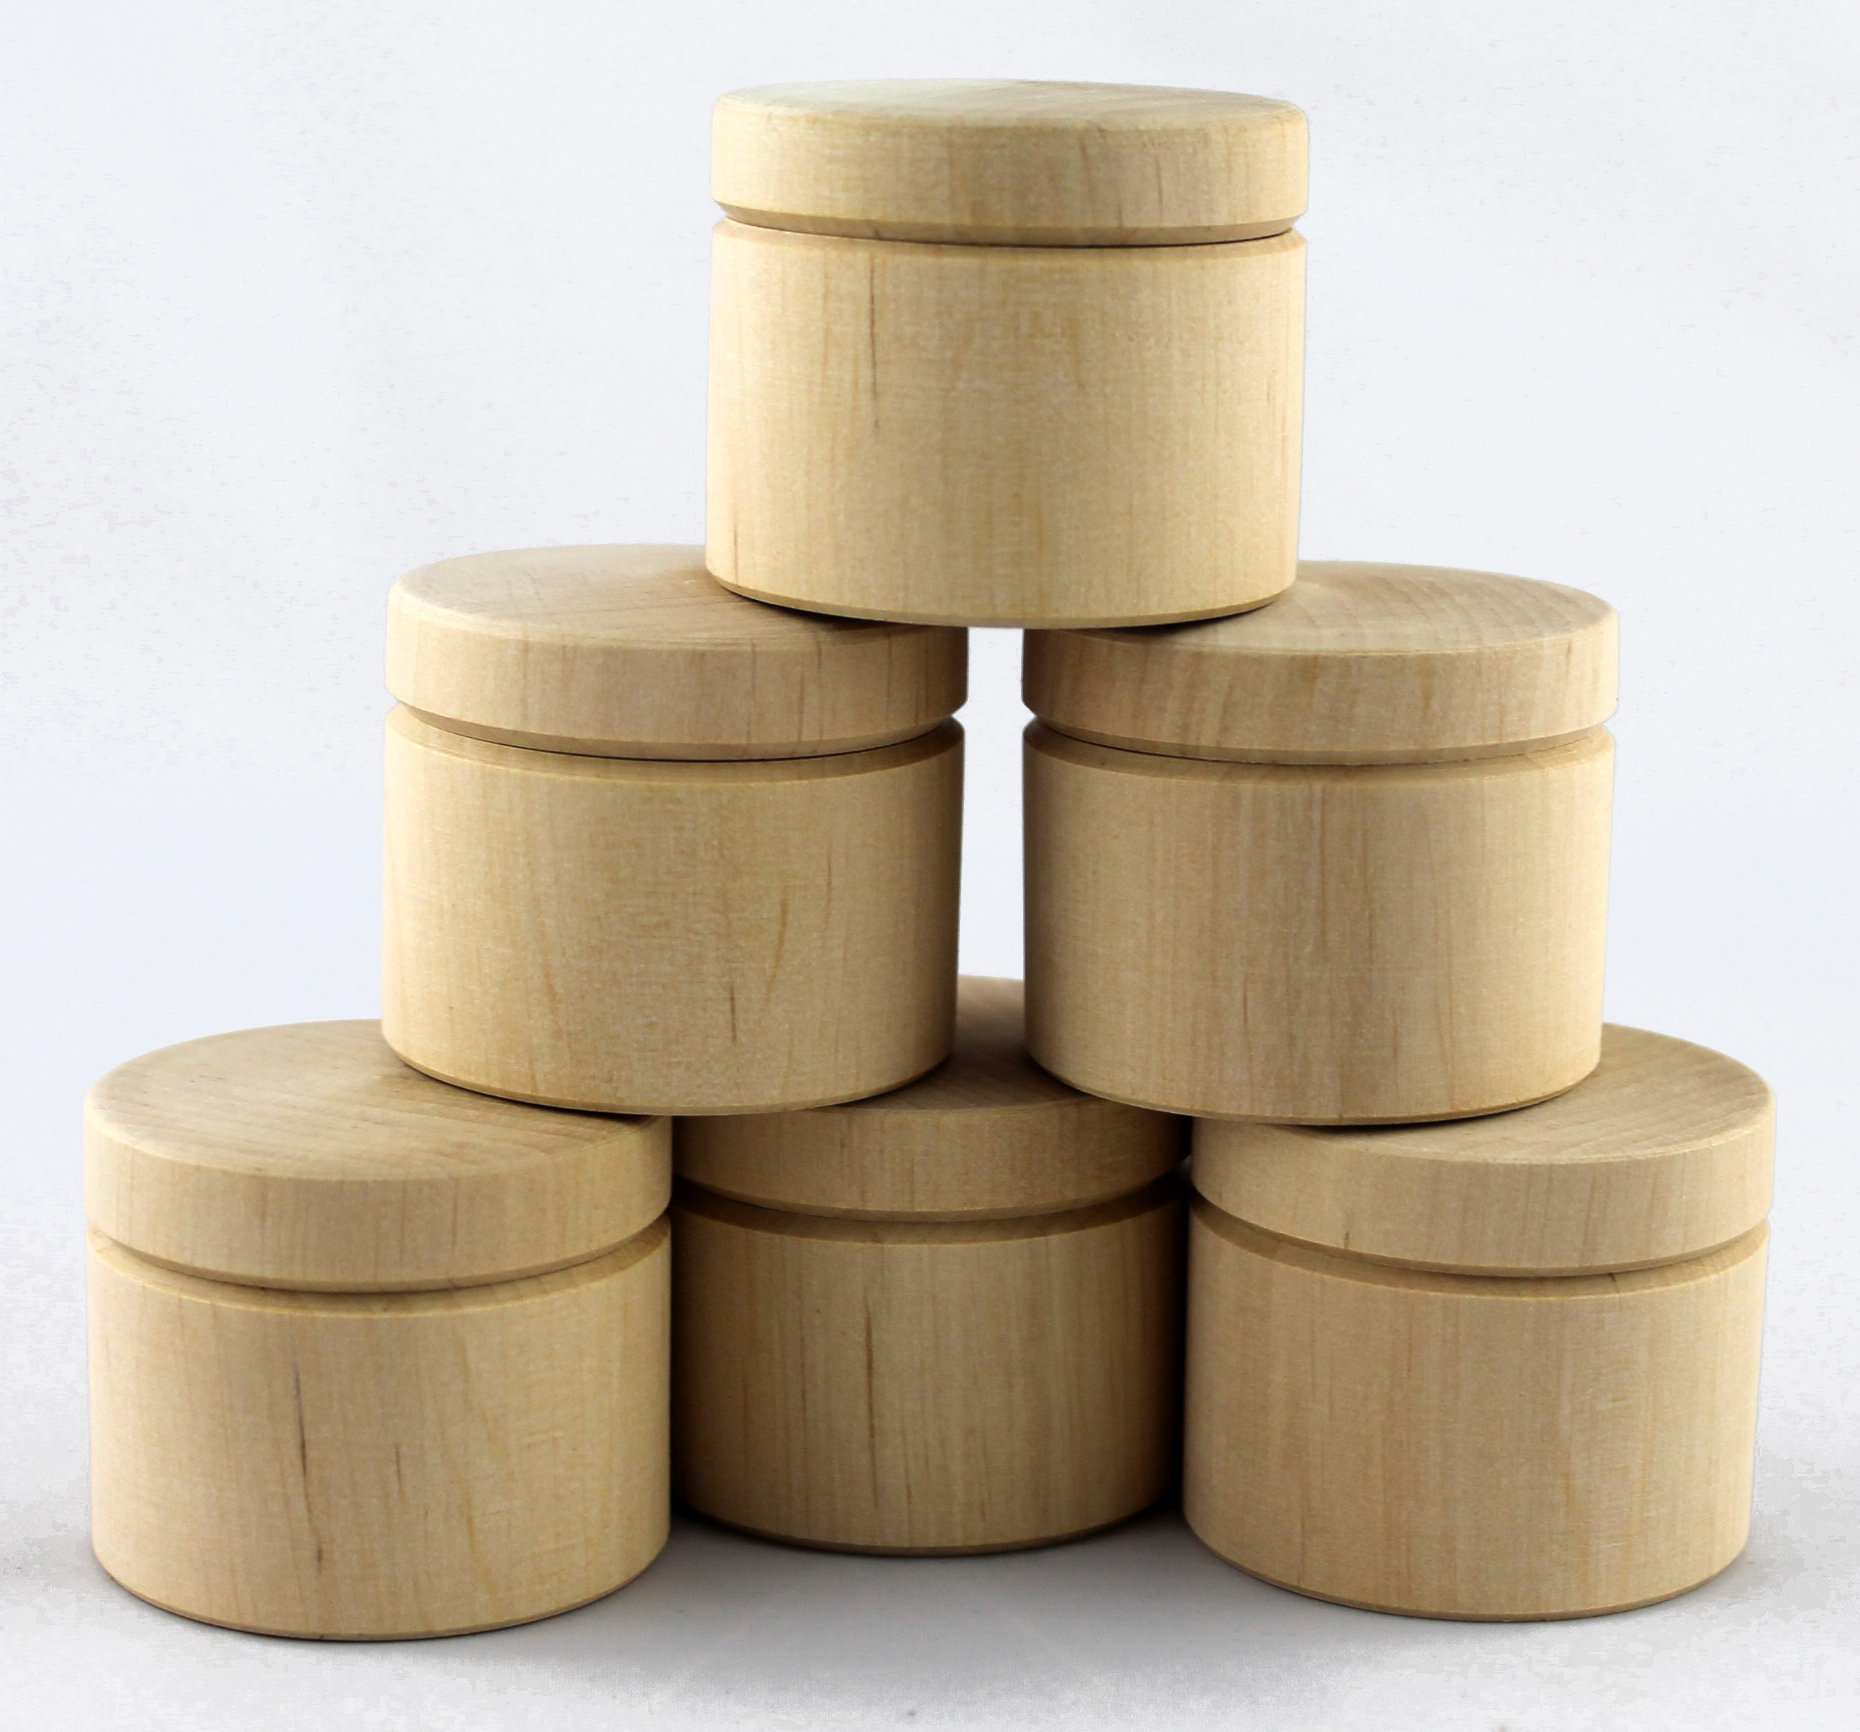 Lot 6 Handmade Unfinished Small Wooden Boxes, Wholesale Wood Craft Boxes